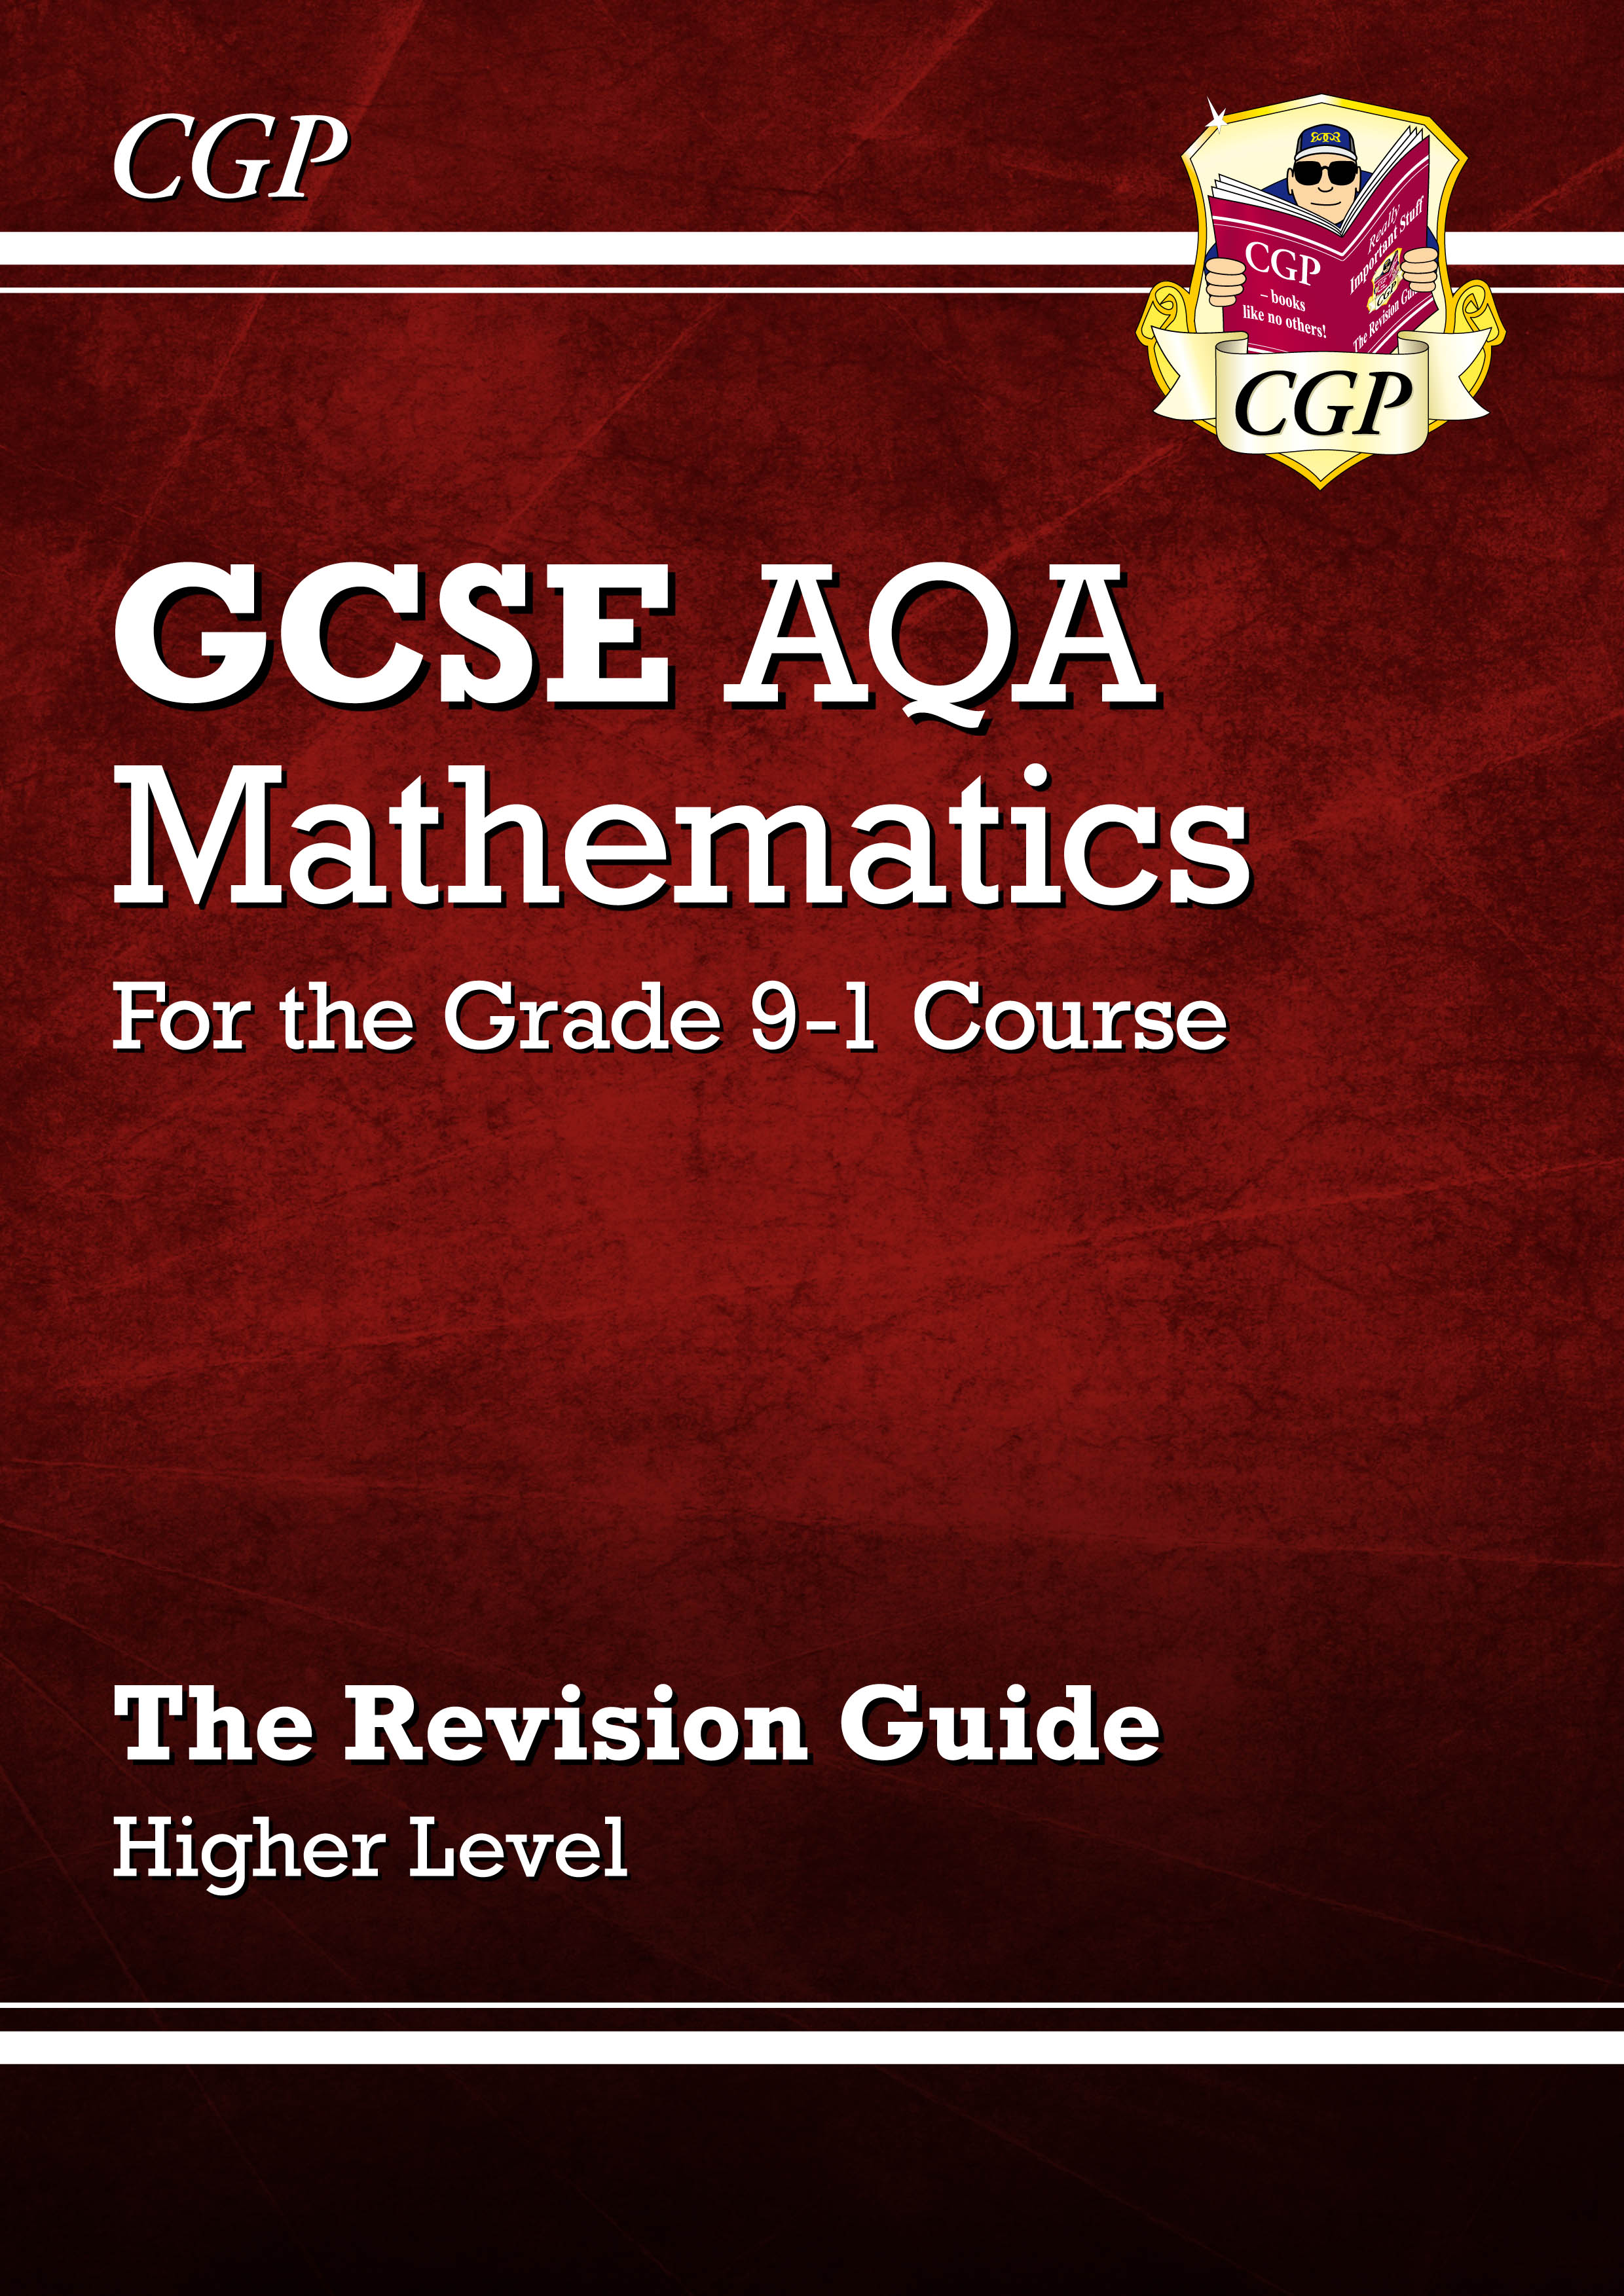 MQHR46DK - GCSE Maths AQA Revision Guide: Higher - for the Grade 9-1 Course